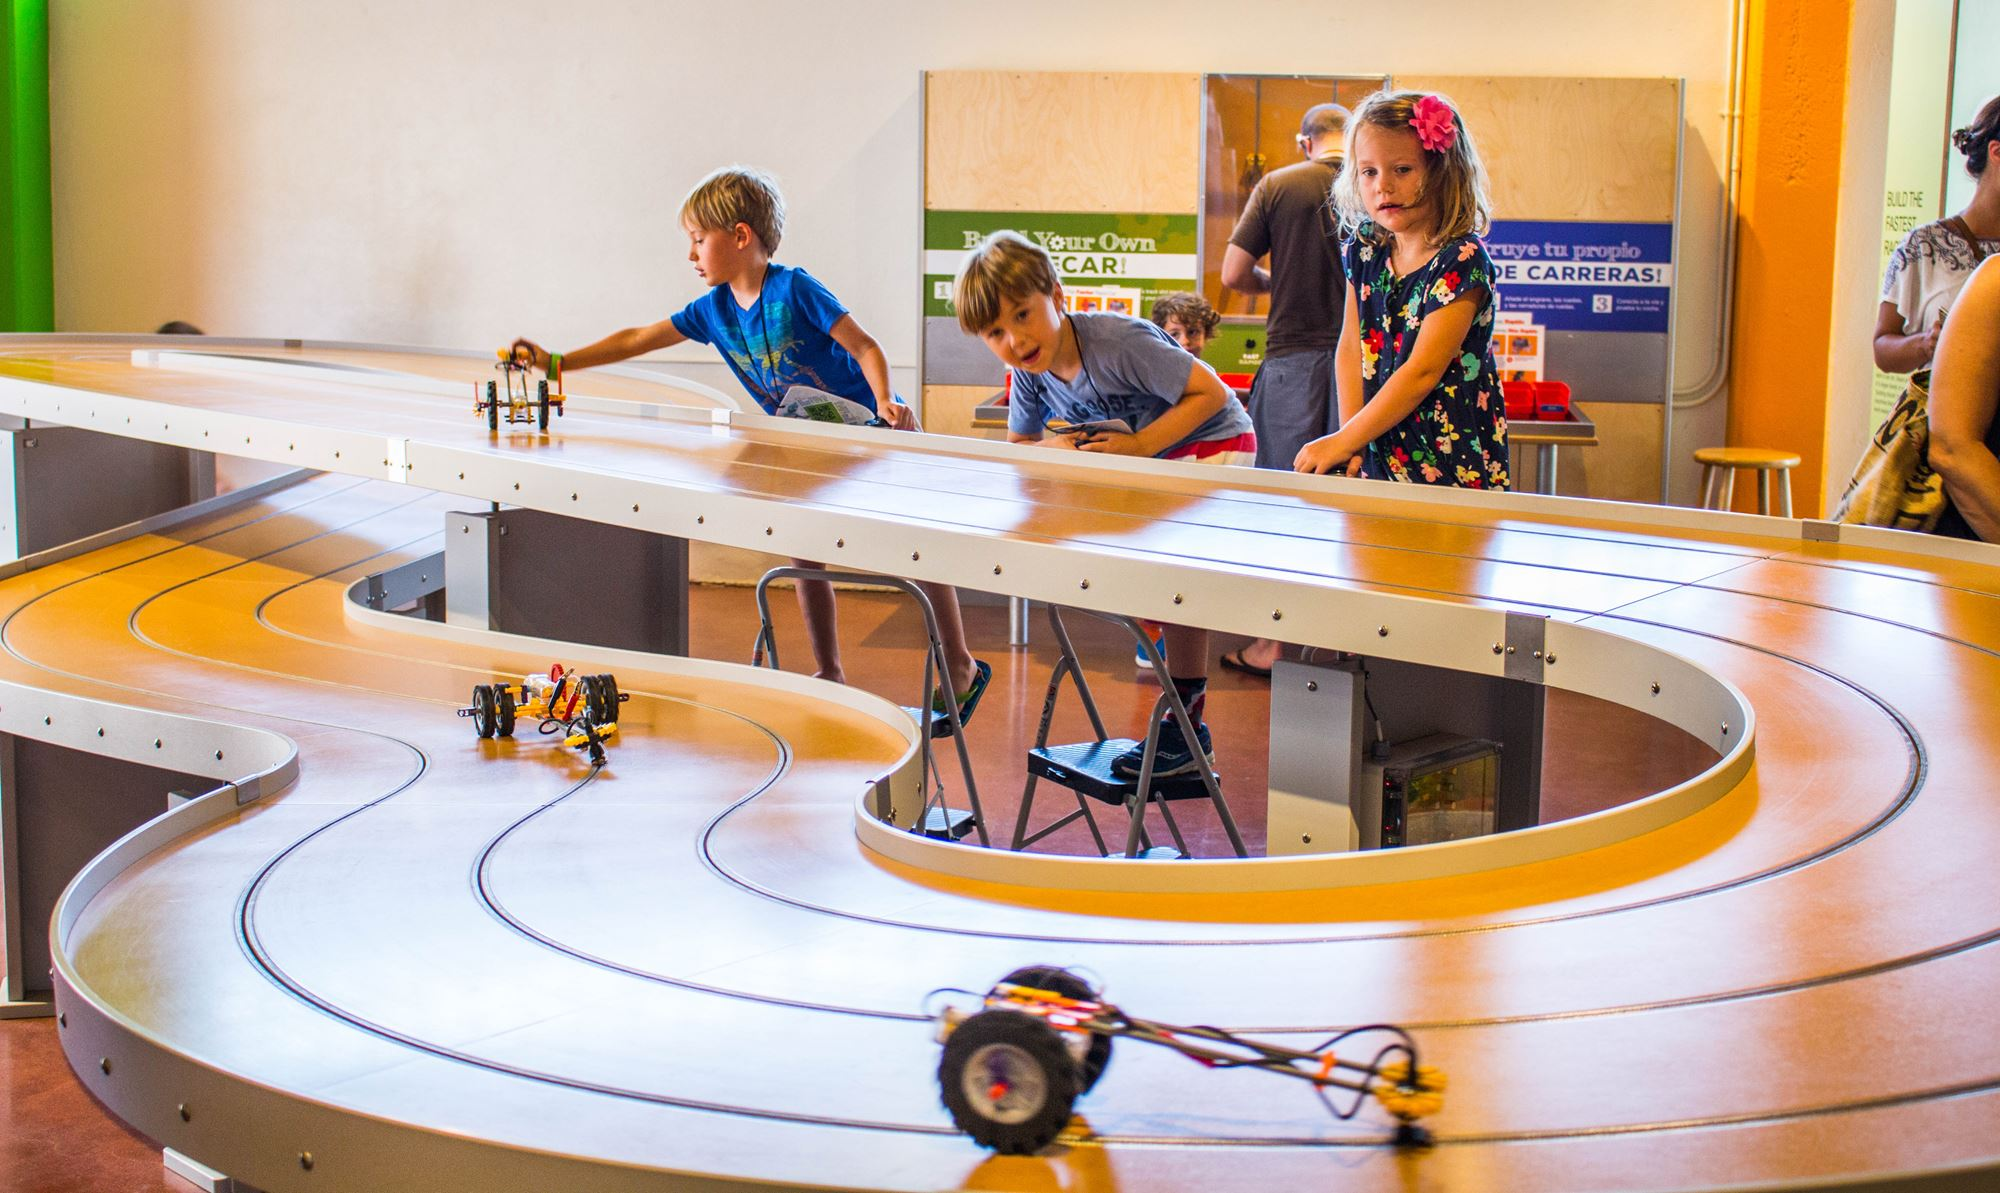 Children playing with a racetrack inside a museum.